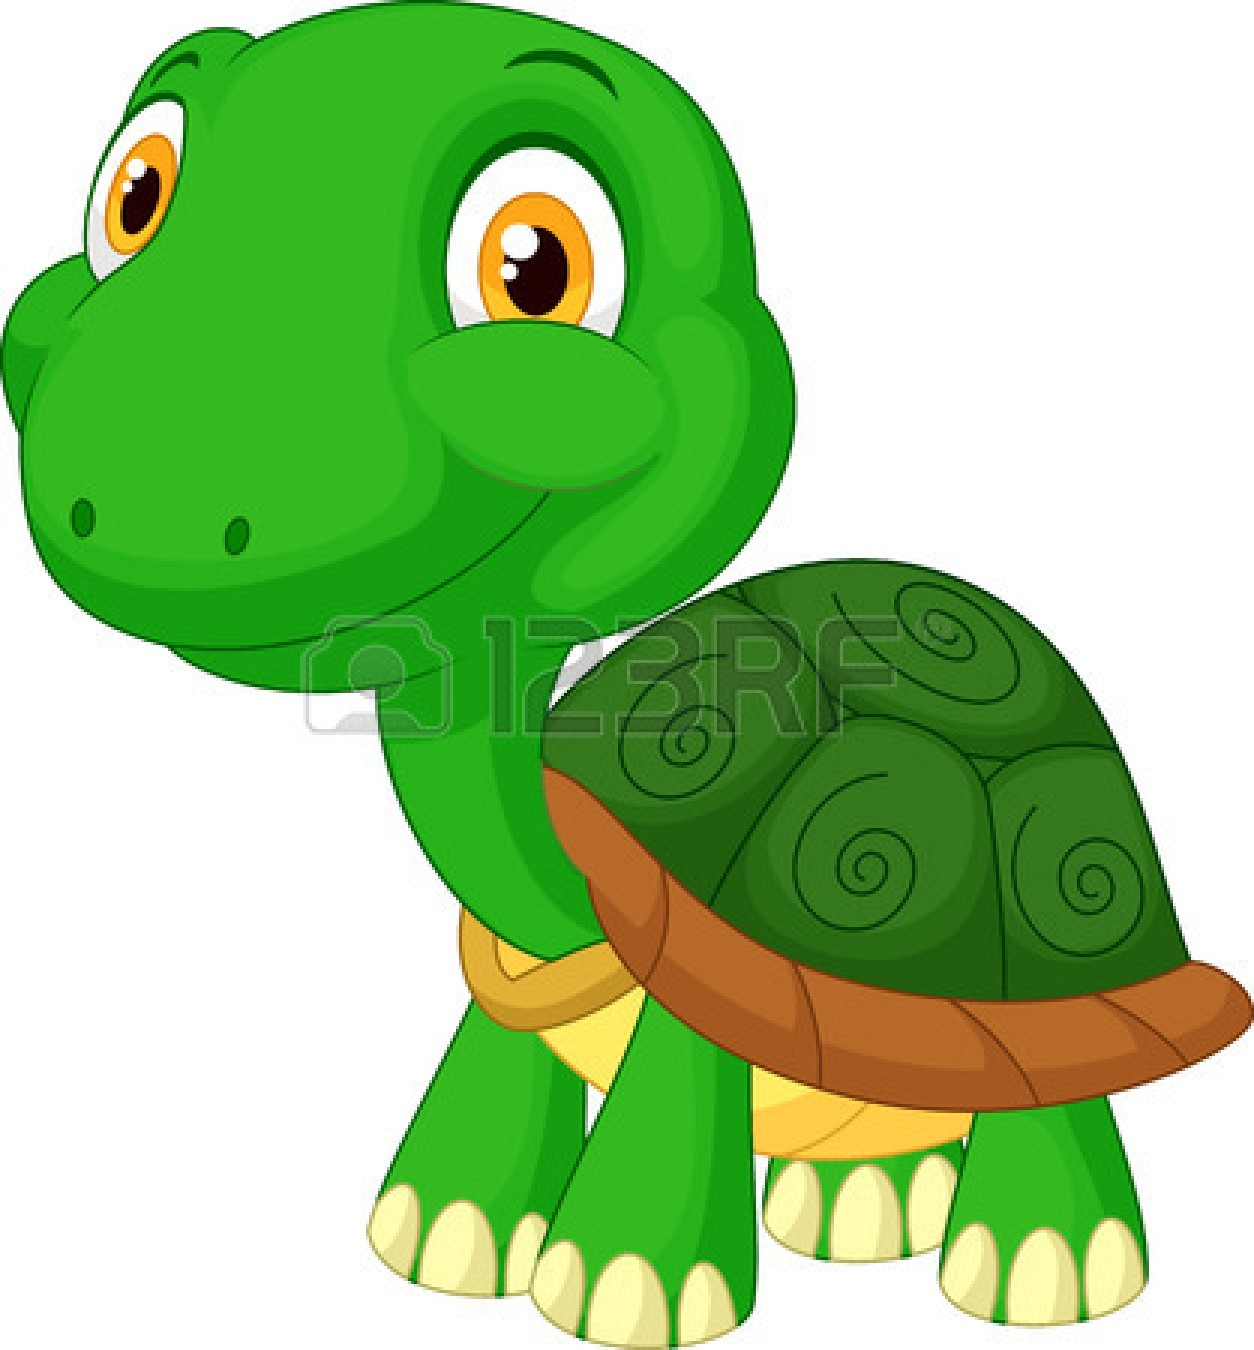 Fast turtle clipart.